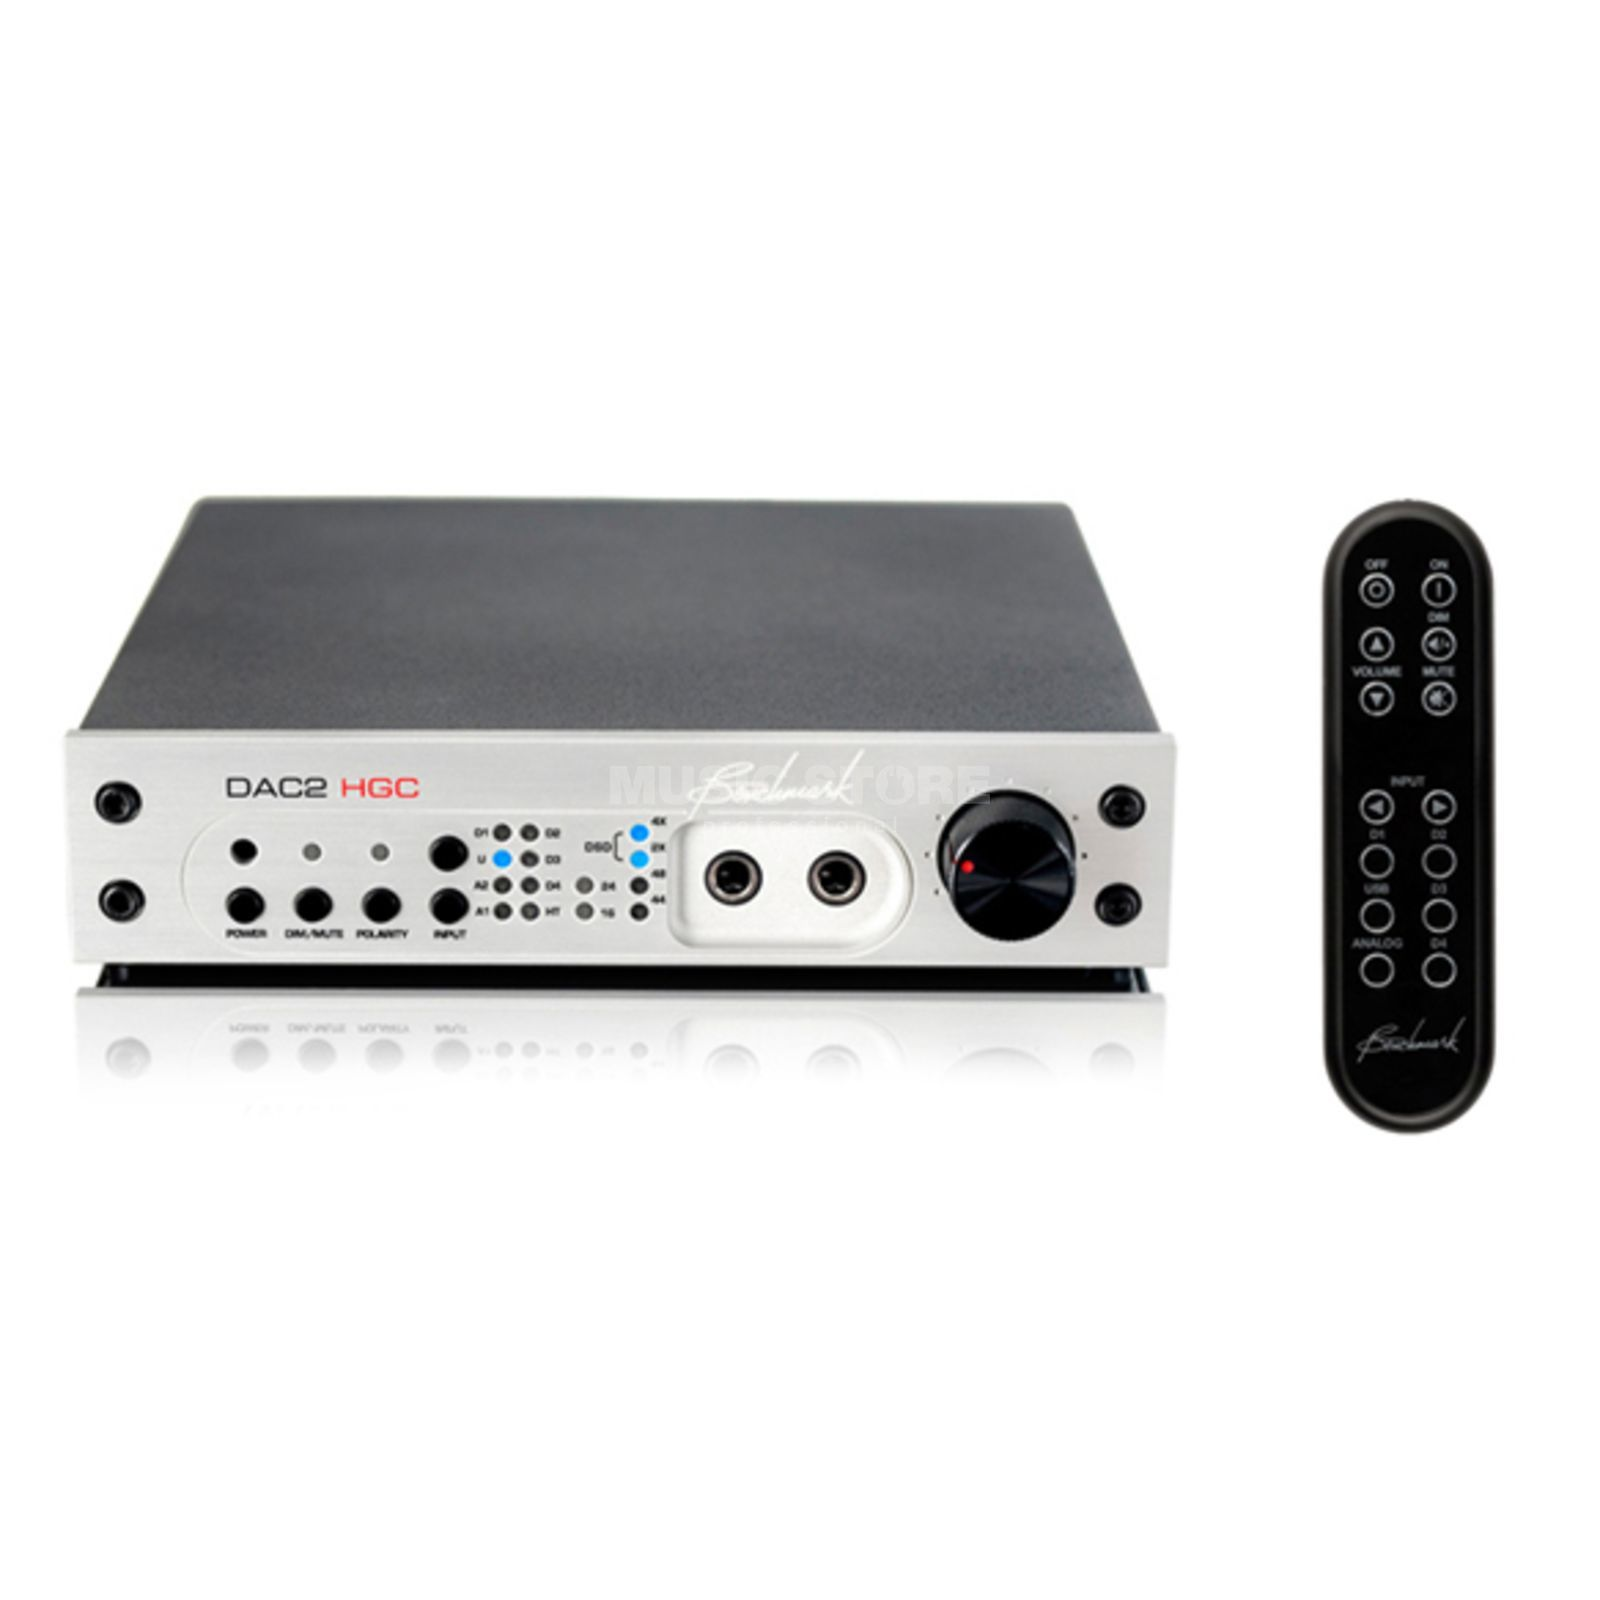 Benchmark Media Systems DAC-2 HGC Silver 32Bit/192kHz D/A with USB Produktbillede